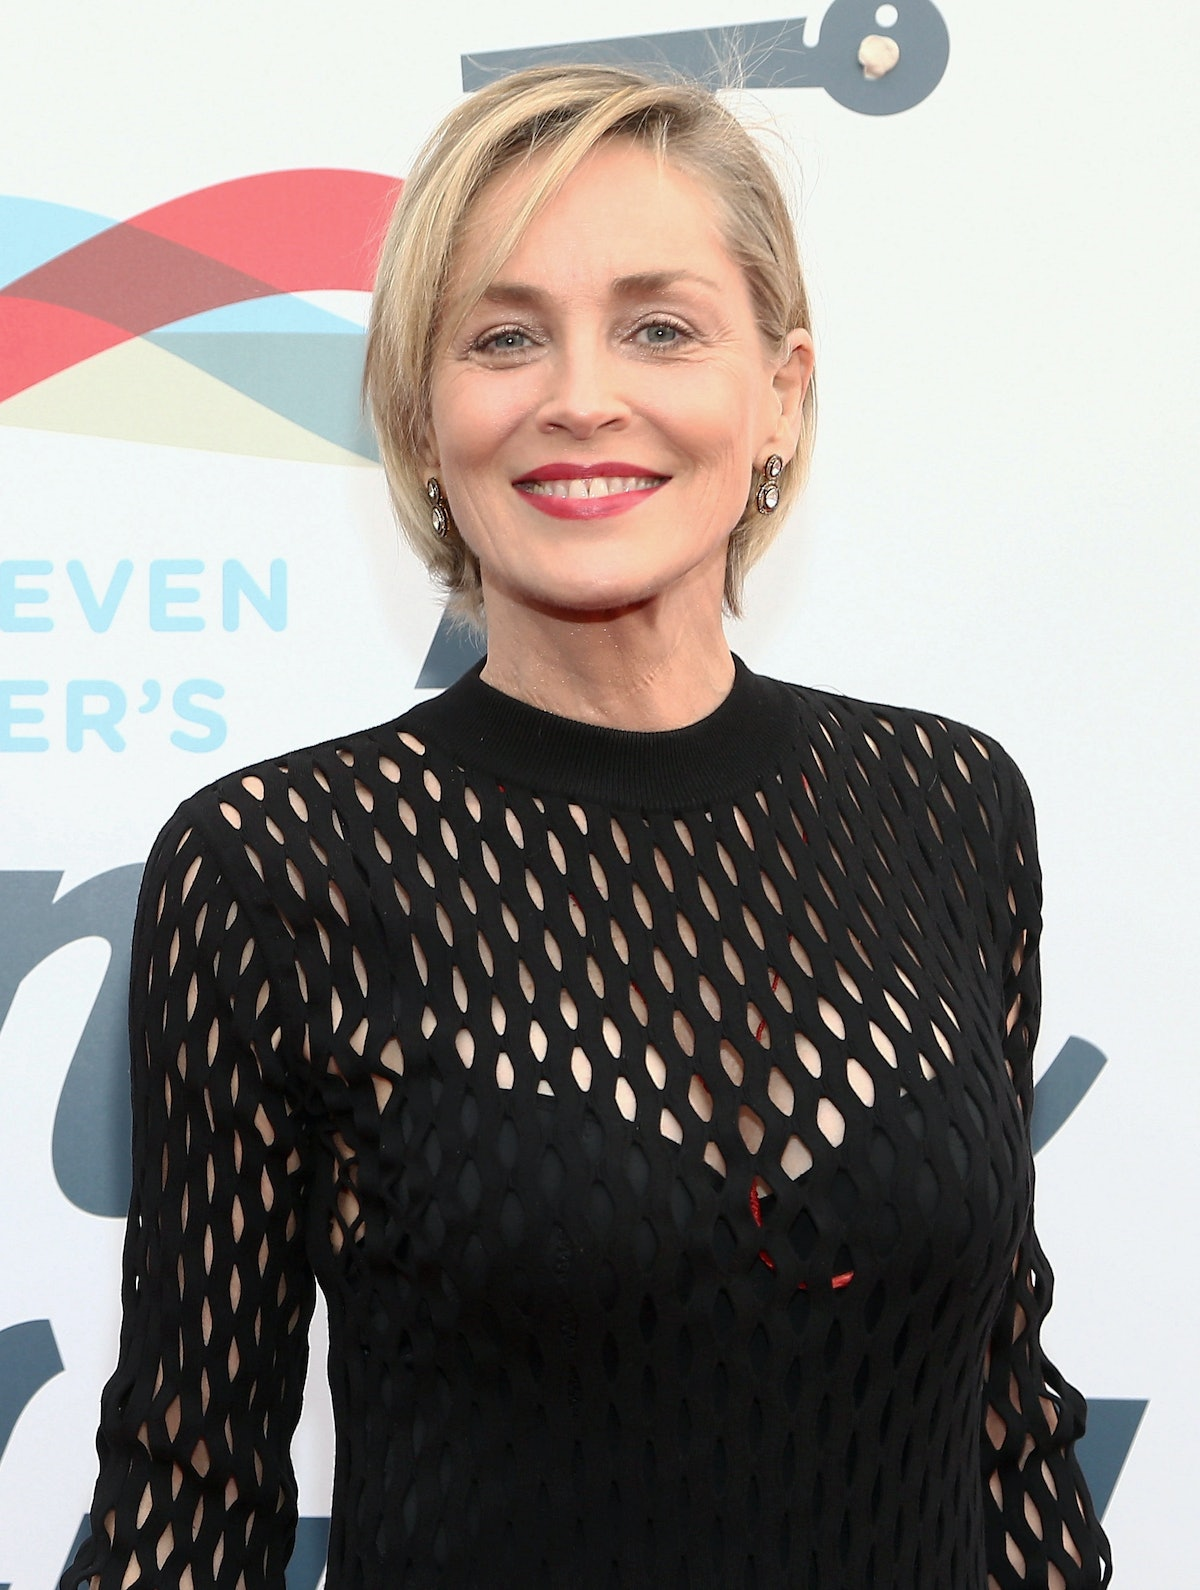 Sharon Stone smiling on the red carpet